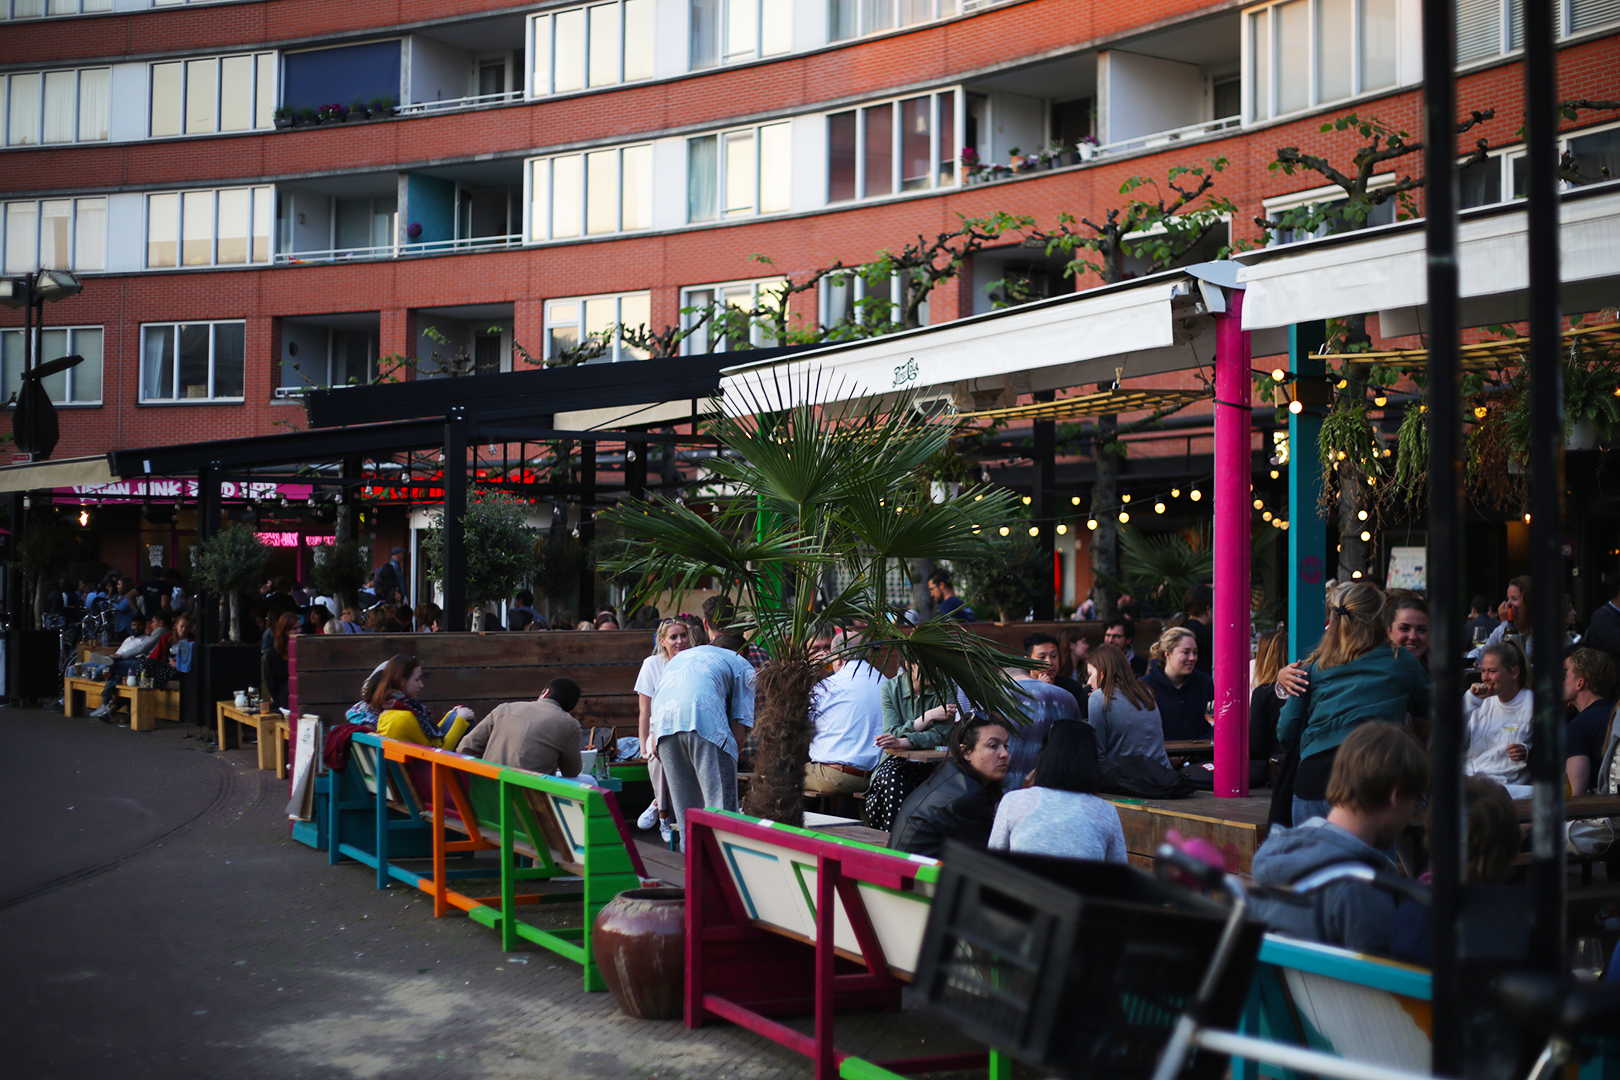 Outdoor seating at Marie Heinekenplein, Amsterdam, the Netherlands